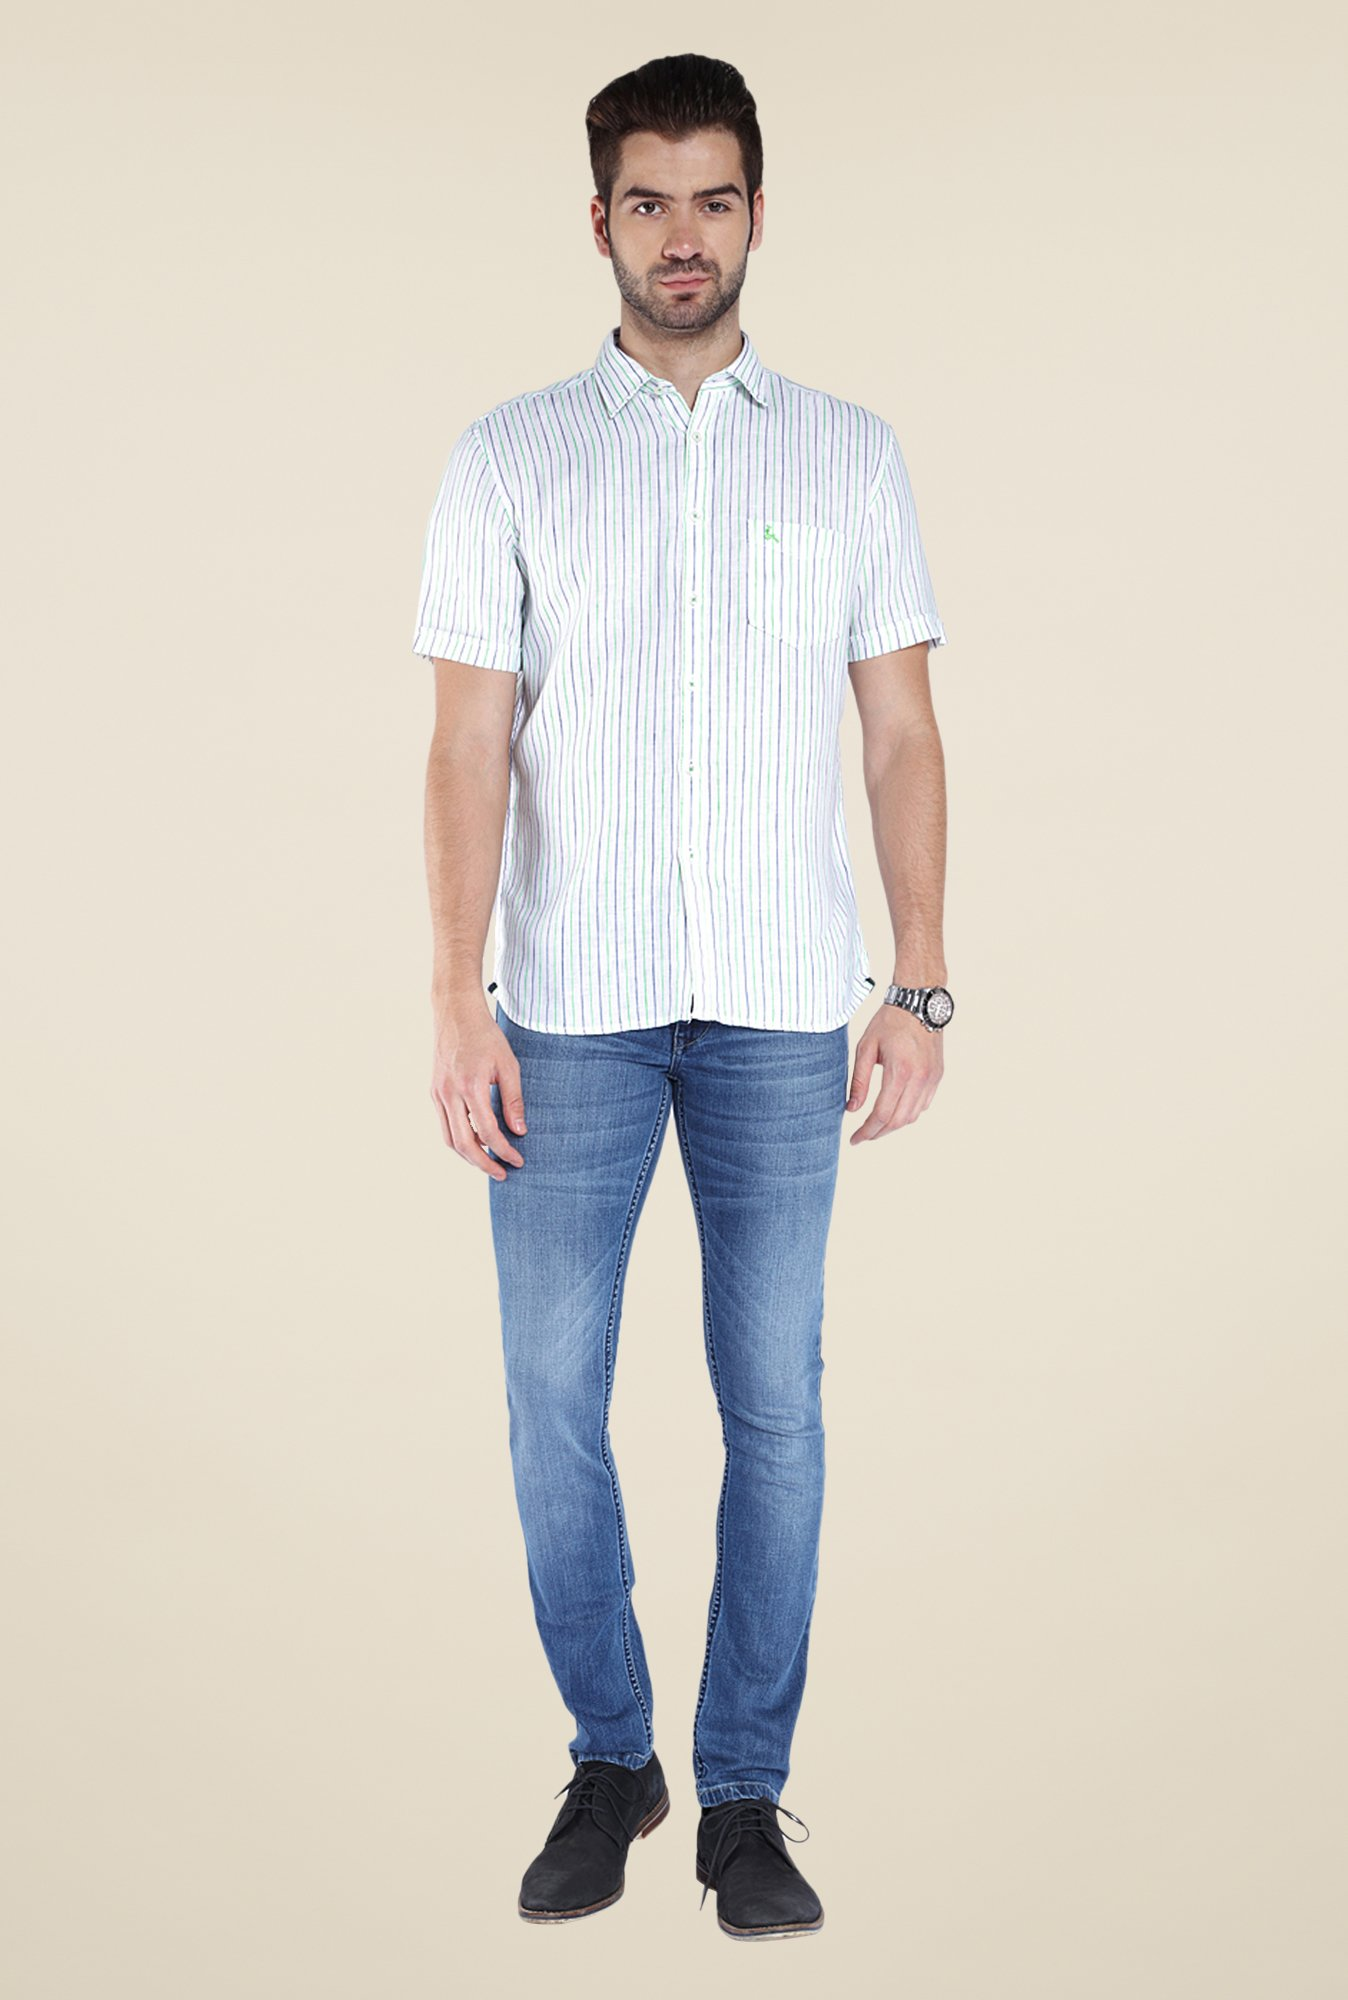 Parx White Striped Linen Shirt